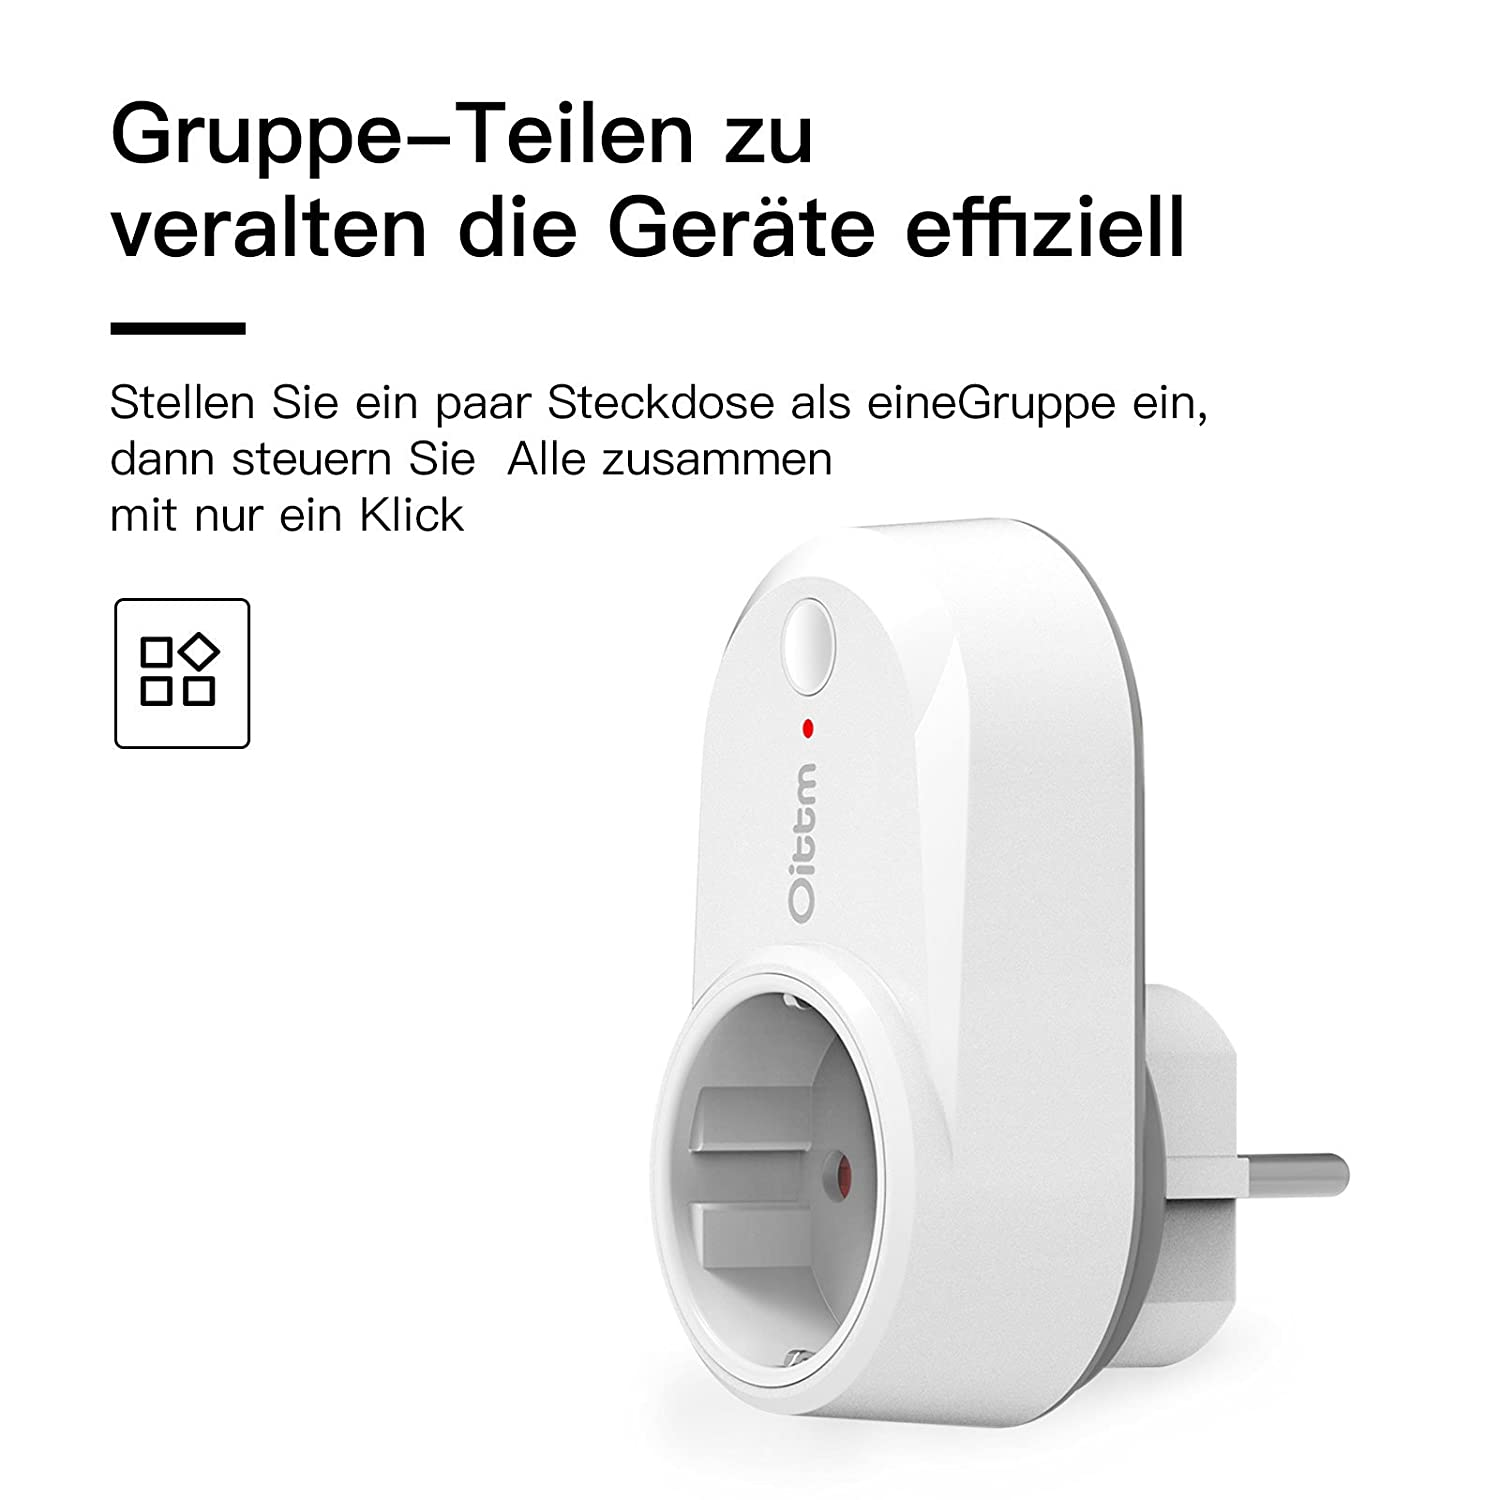 Oittm Smart Plug Funktioniert mit Alexa Smart Home: Amazon.de ...